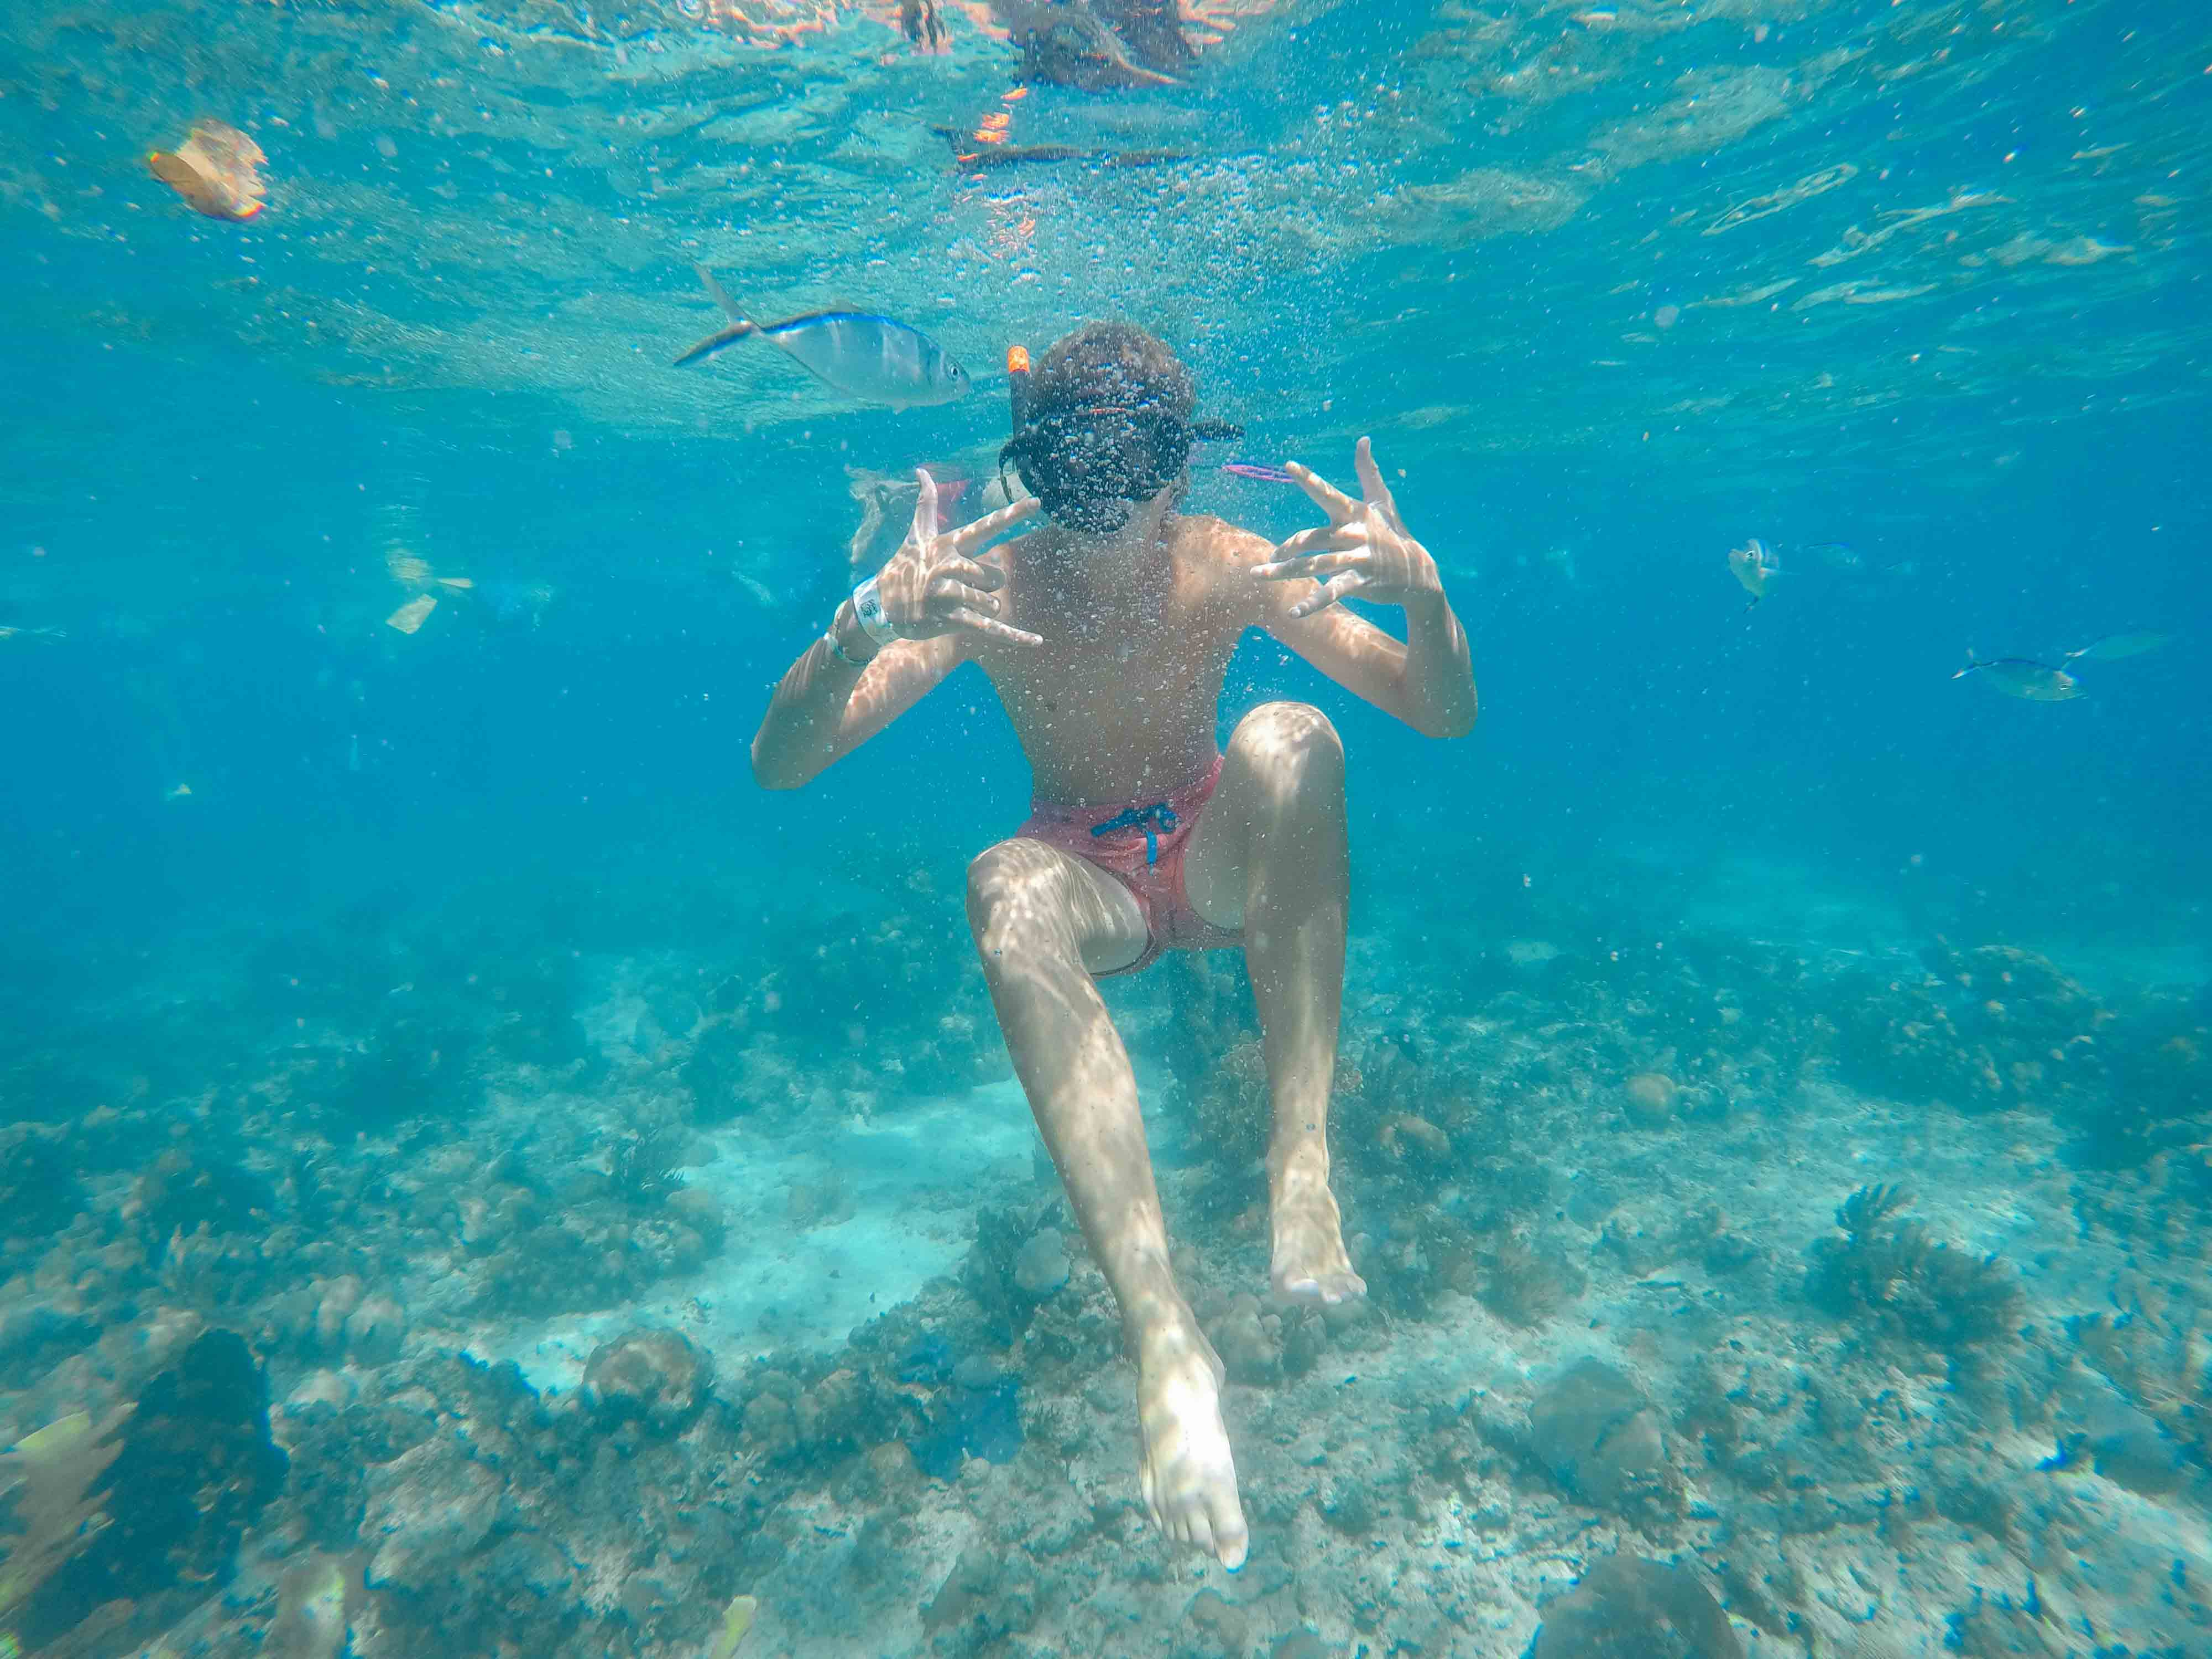 Dive into the waters around Catalina Island